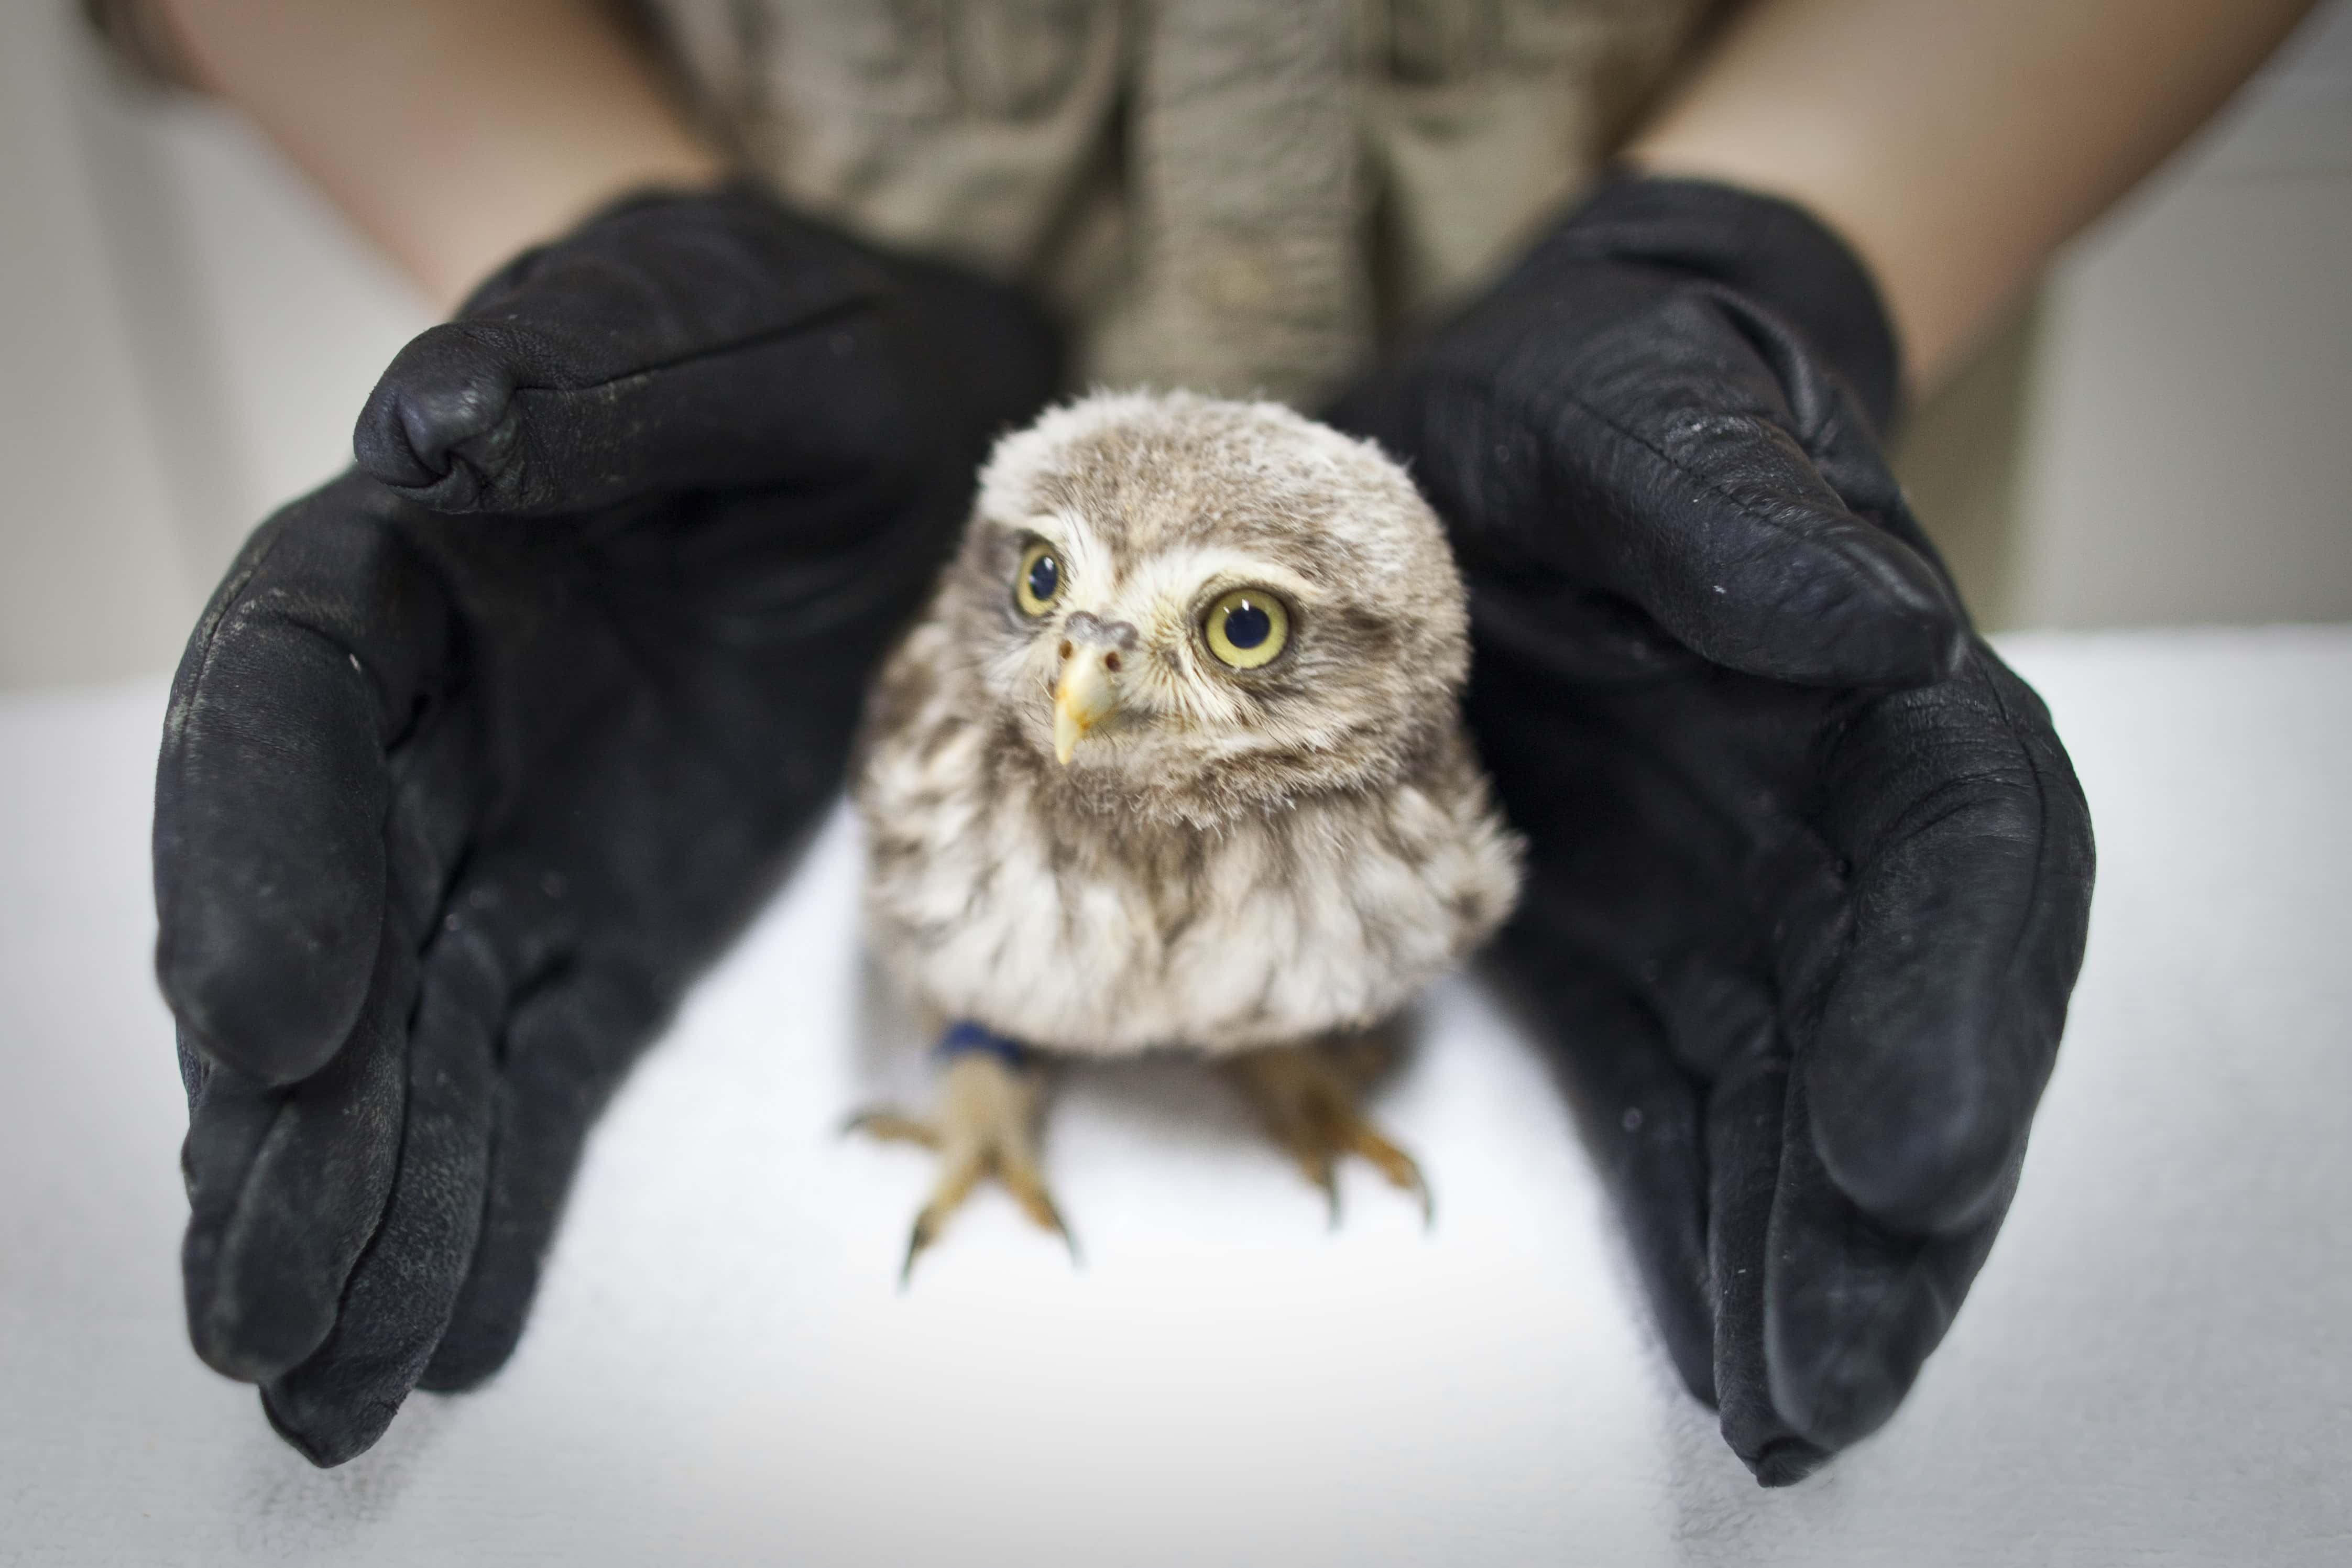 In this May 16, 2011 photo, a veterinarian stretches her hands to protect a little owl, which is poisoned by pesticide and suffering from a neurological disorder that makes it difficult to keep its balance while standing, after a medical check at the Beijing Raptor Rescue Center in Beijing, China. As Beijing falls along a north-south migratory route that the birds use, more than 43 types of raptors can be found in the city year-round, some of which die or are injured in collisions with skyscrapers and overhead lines or  trapped by illegal bird catchers. (AP Photo/Alexander F. Yuan)